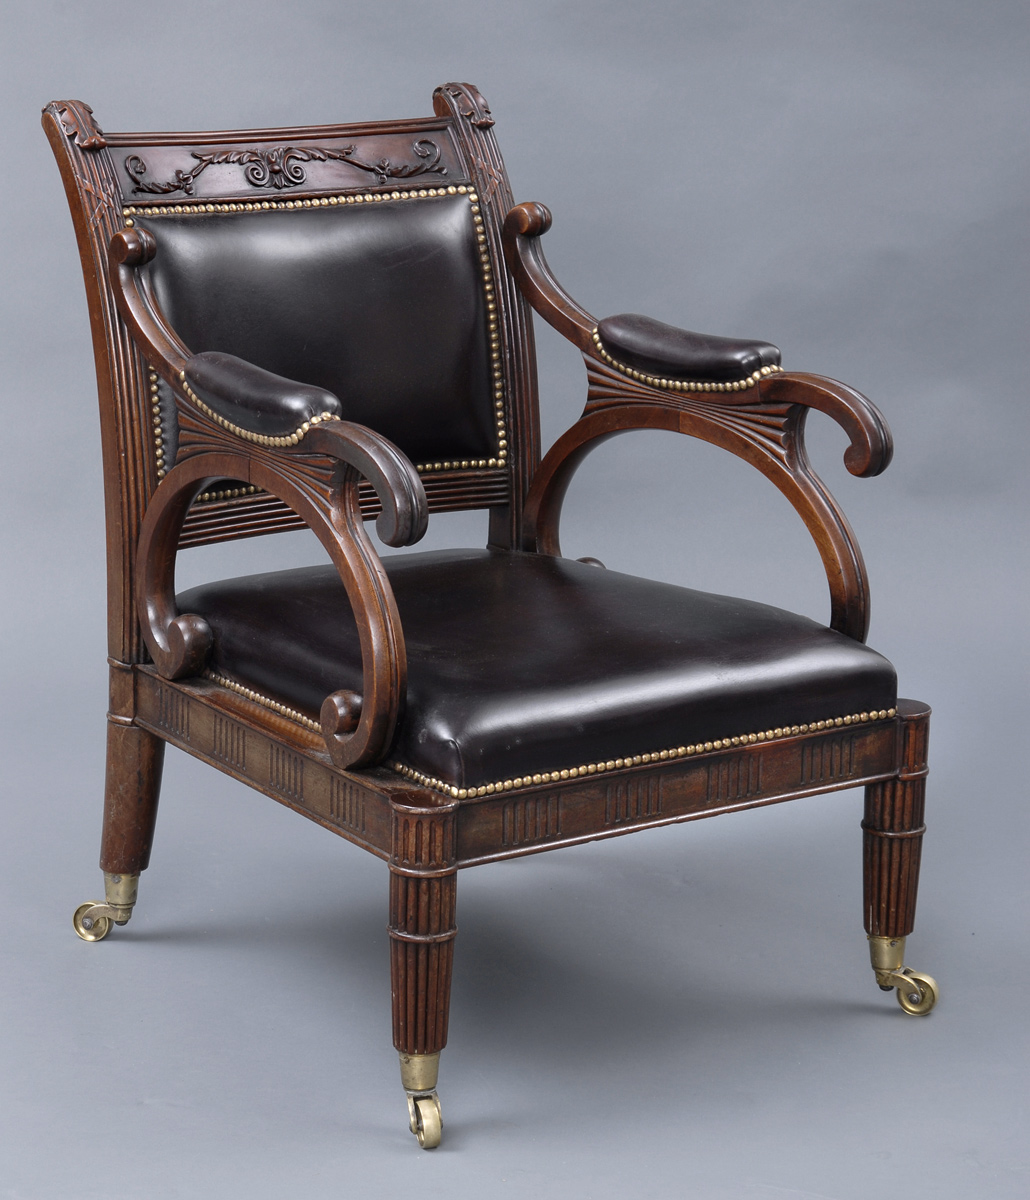 English Antique Period Regency Mahogany & Leather Library Armchair, Circa  1820 - Antique Library Chairs English Regency Mahogany & Leather Armchair